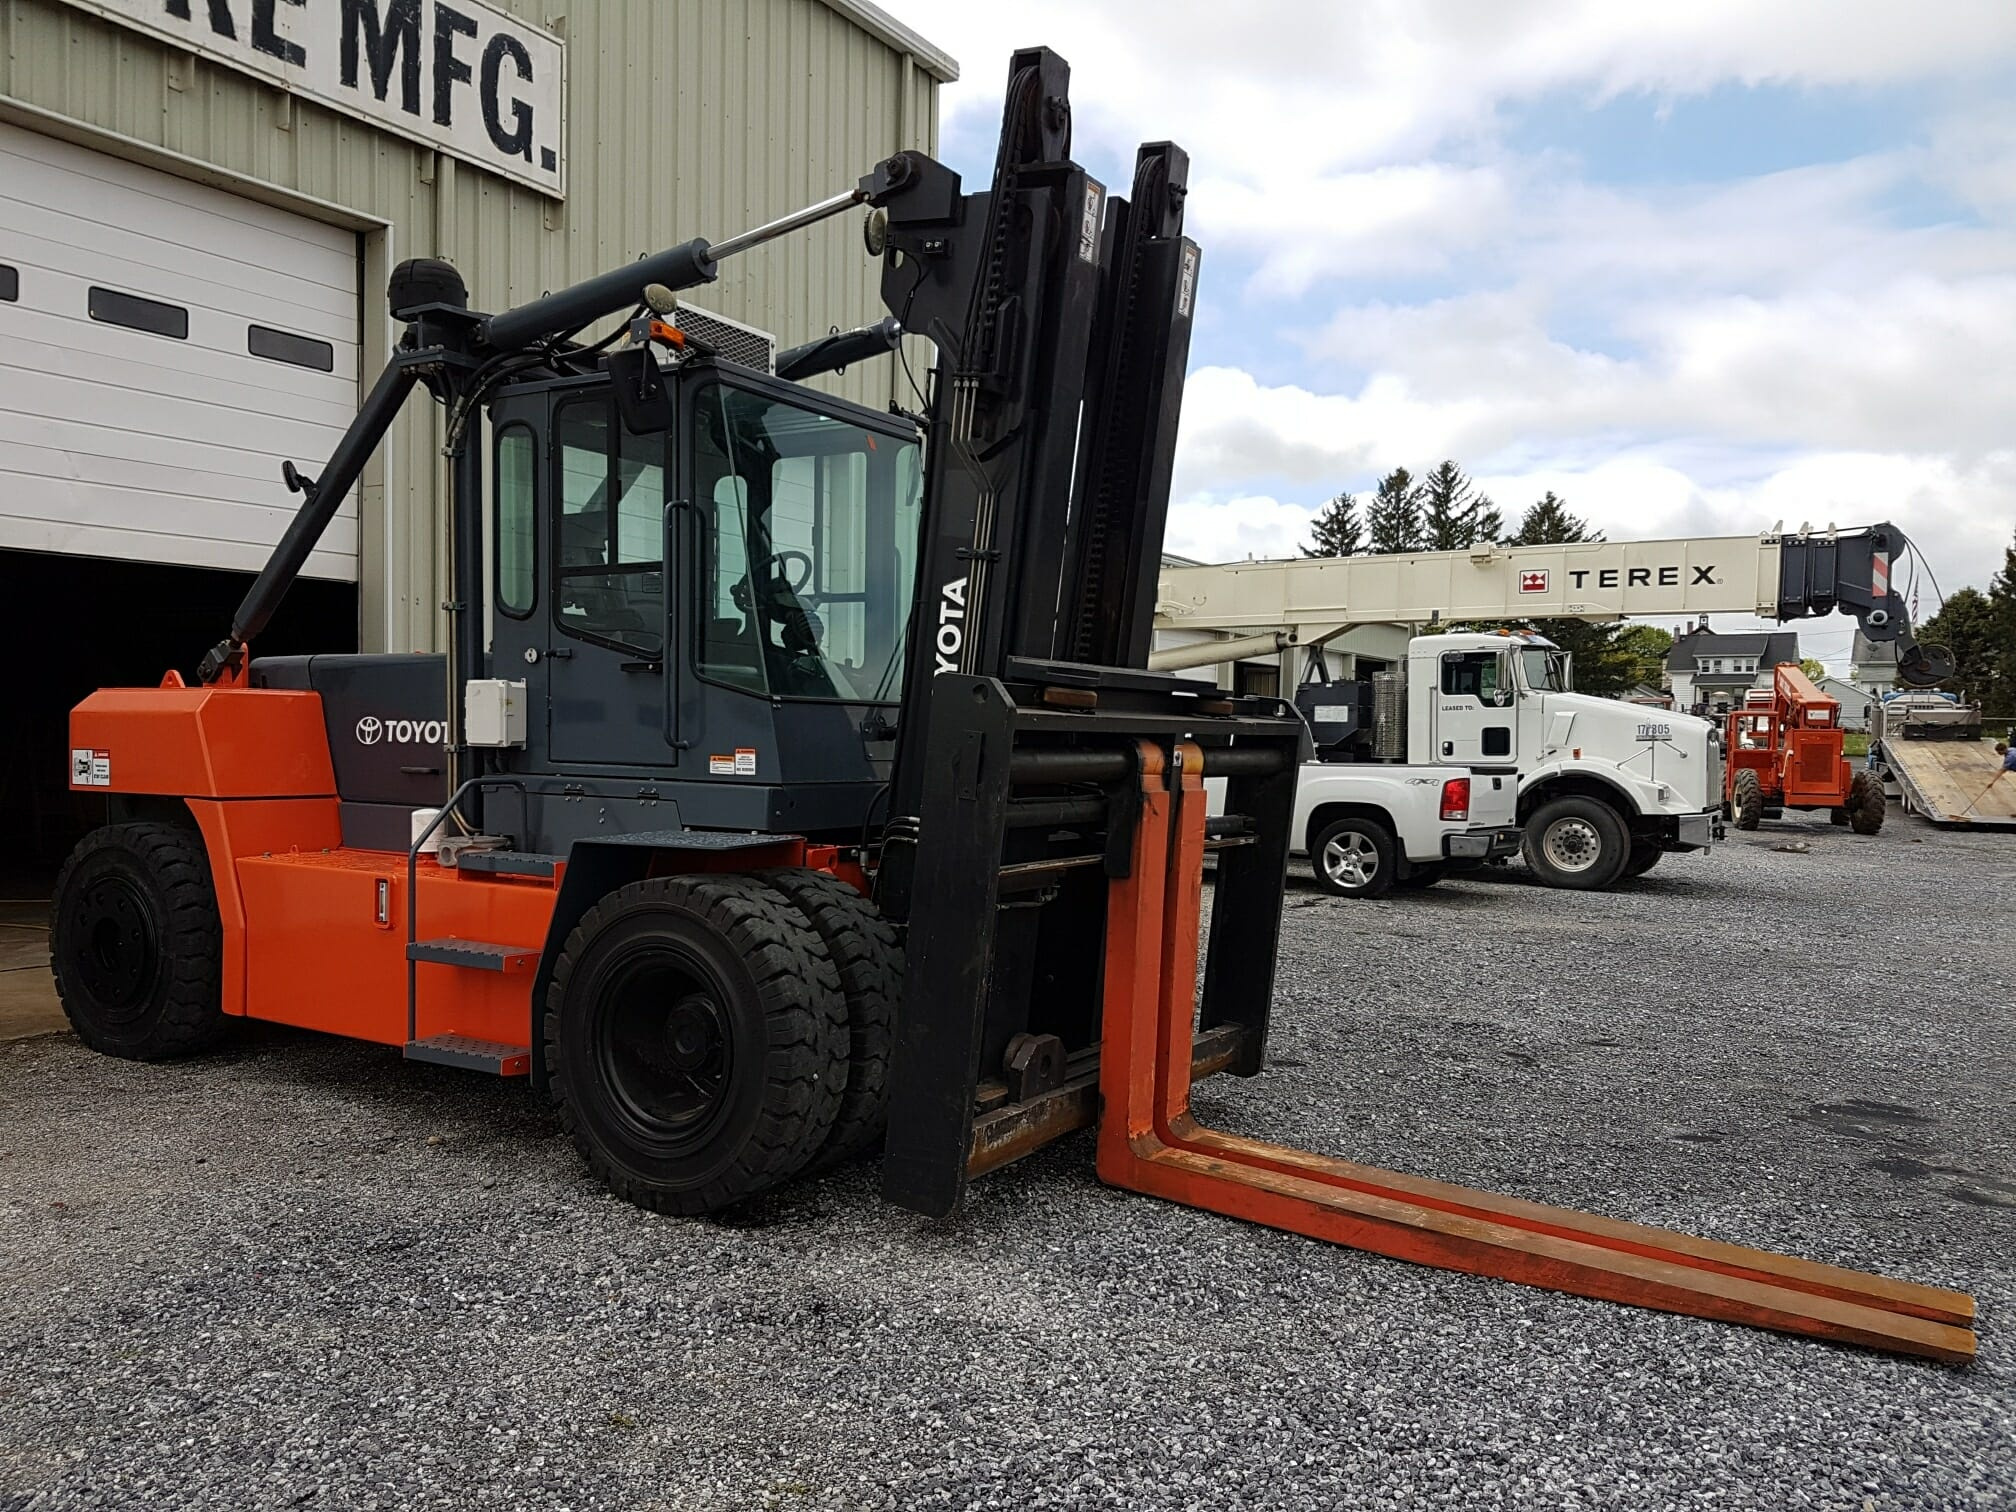 36,000 lb Capacity Toyota THD3600-48 Forklift For Sale 18 Ton